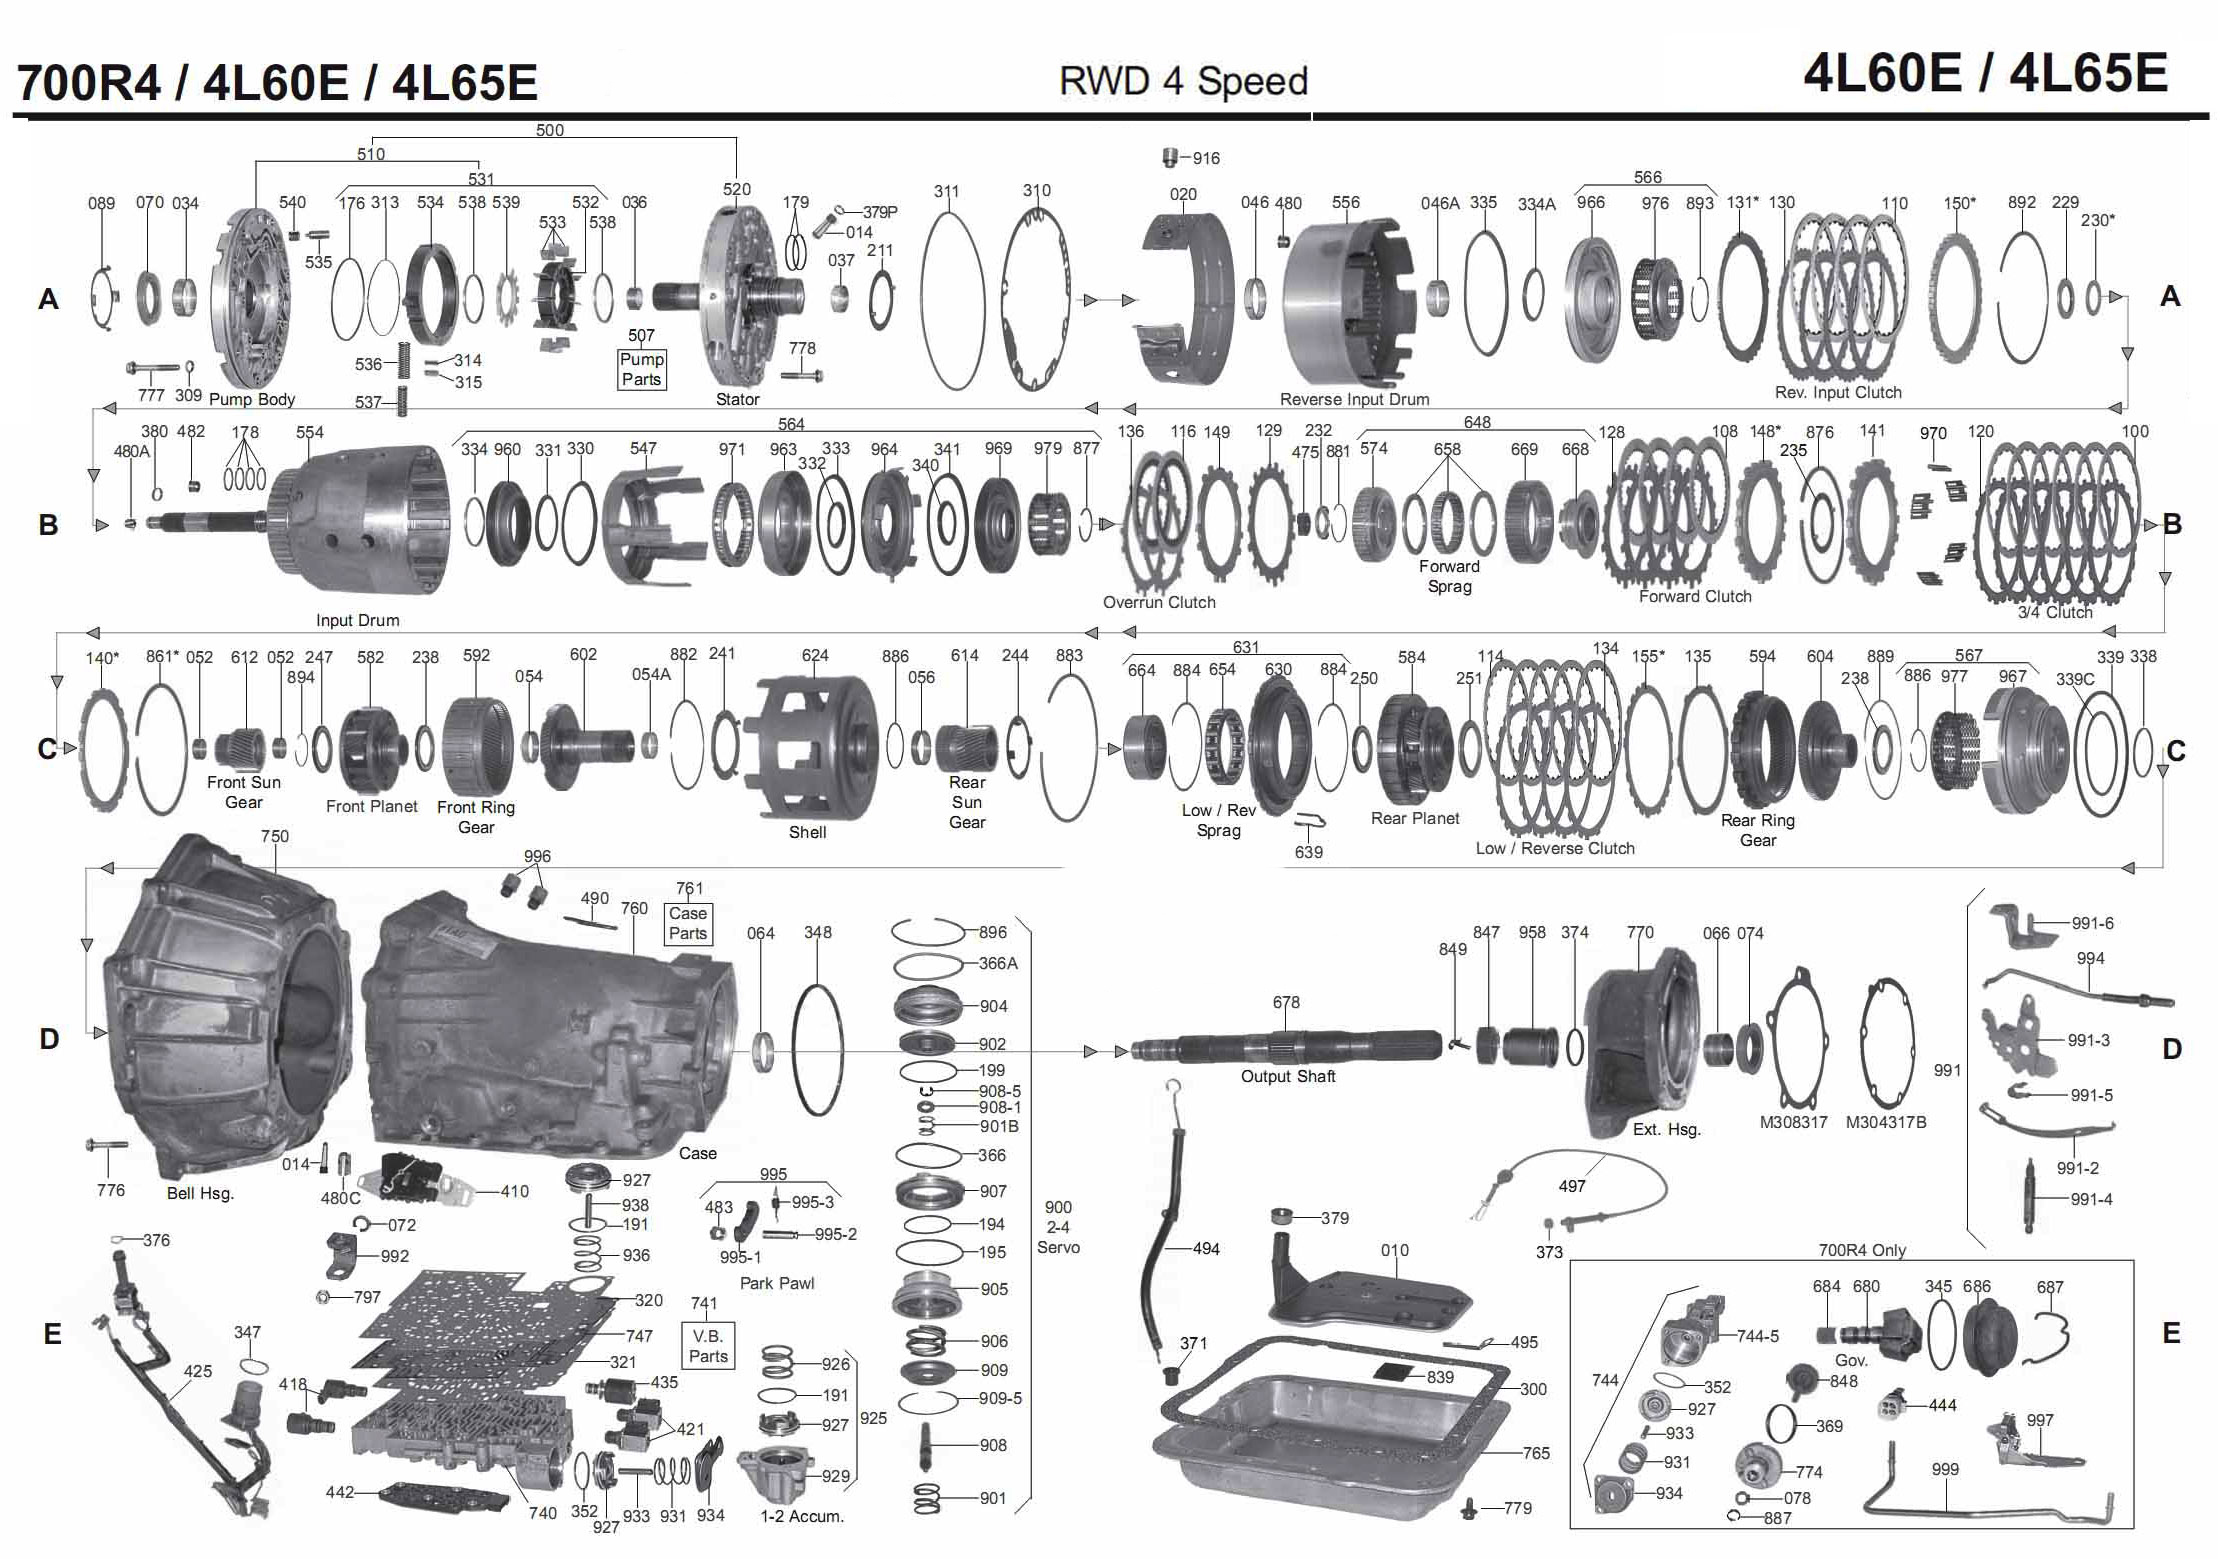 Transmission Rebuild Guide 700r4 4l60e 4l65e Manuals